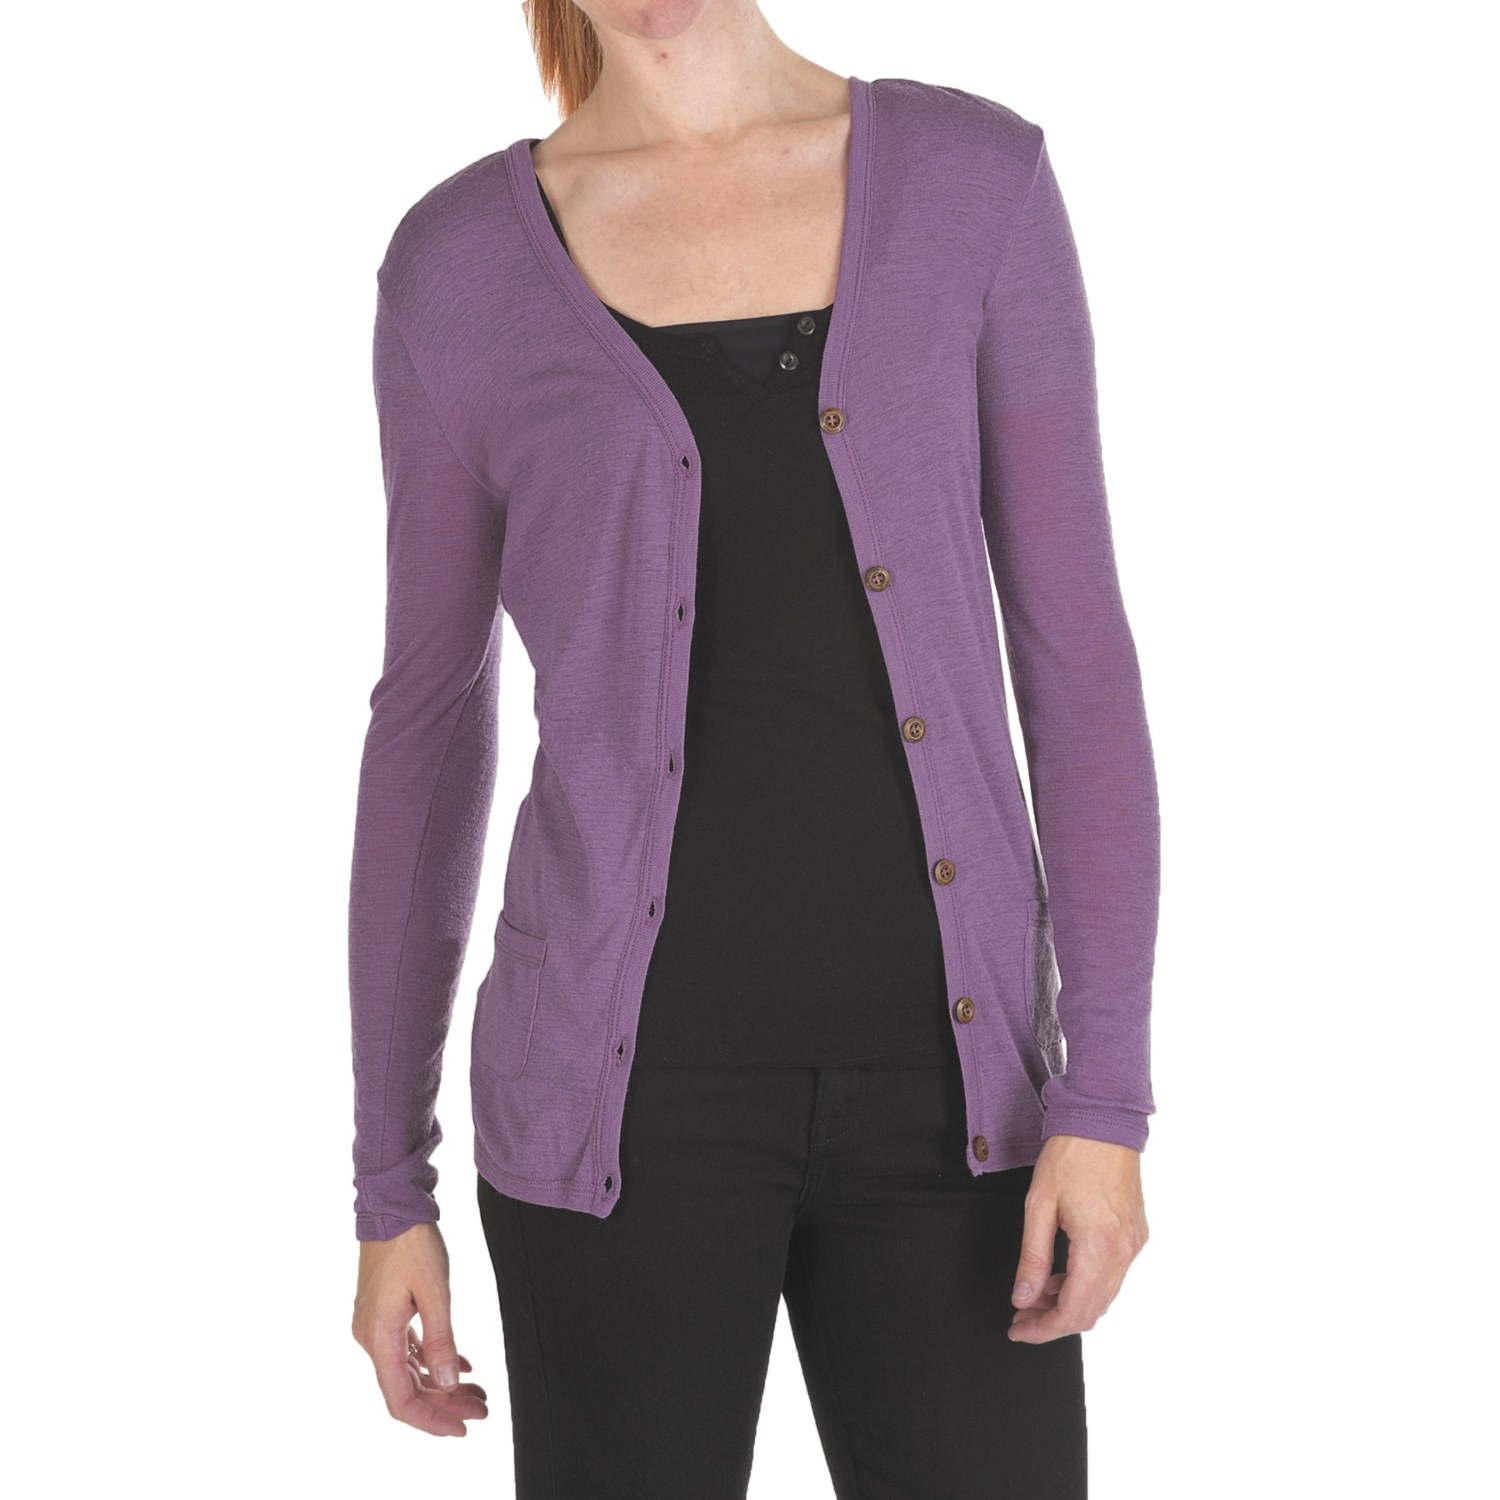 Ladies Lightweight Cardigan Sweaters - Cardigan With Buttons